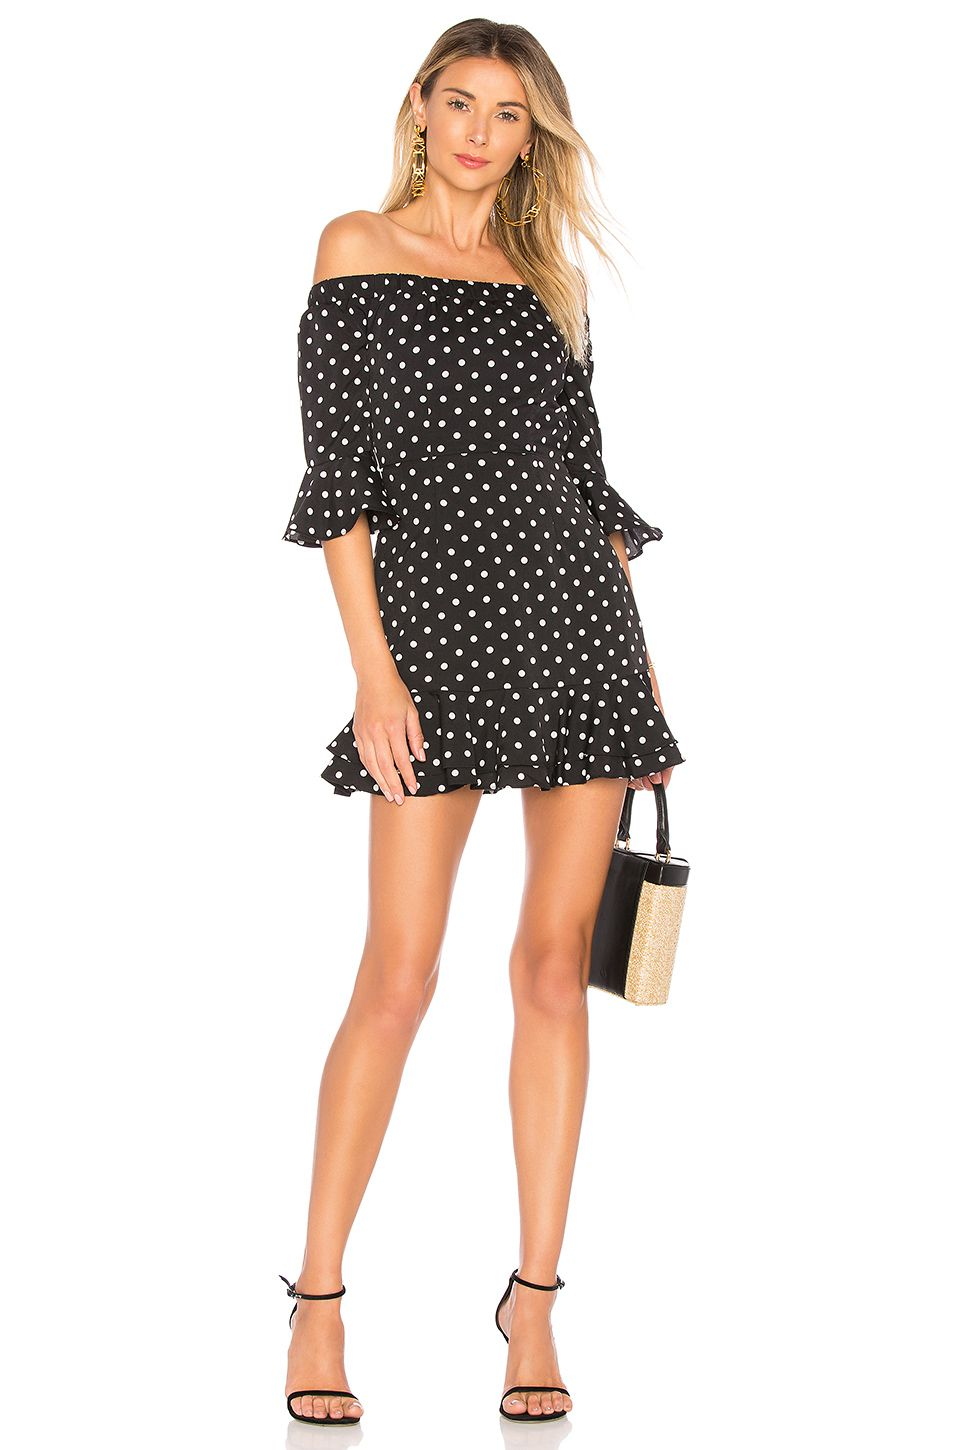 3baf9eb77725 BY THE WAY. BY THE WAY. FAYE RUFFLE OFF SHOULDER DRESS.